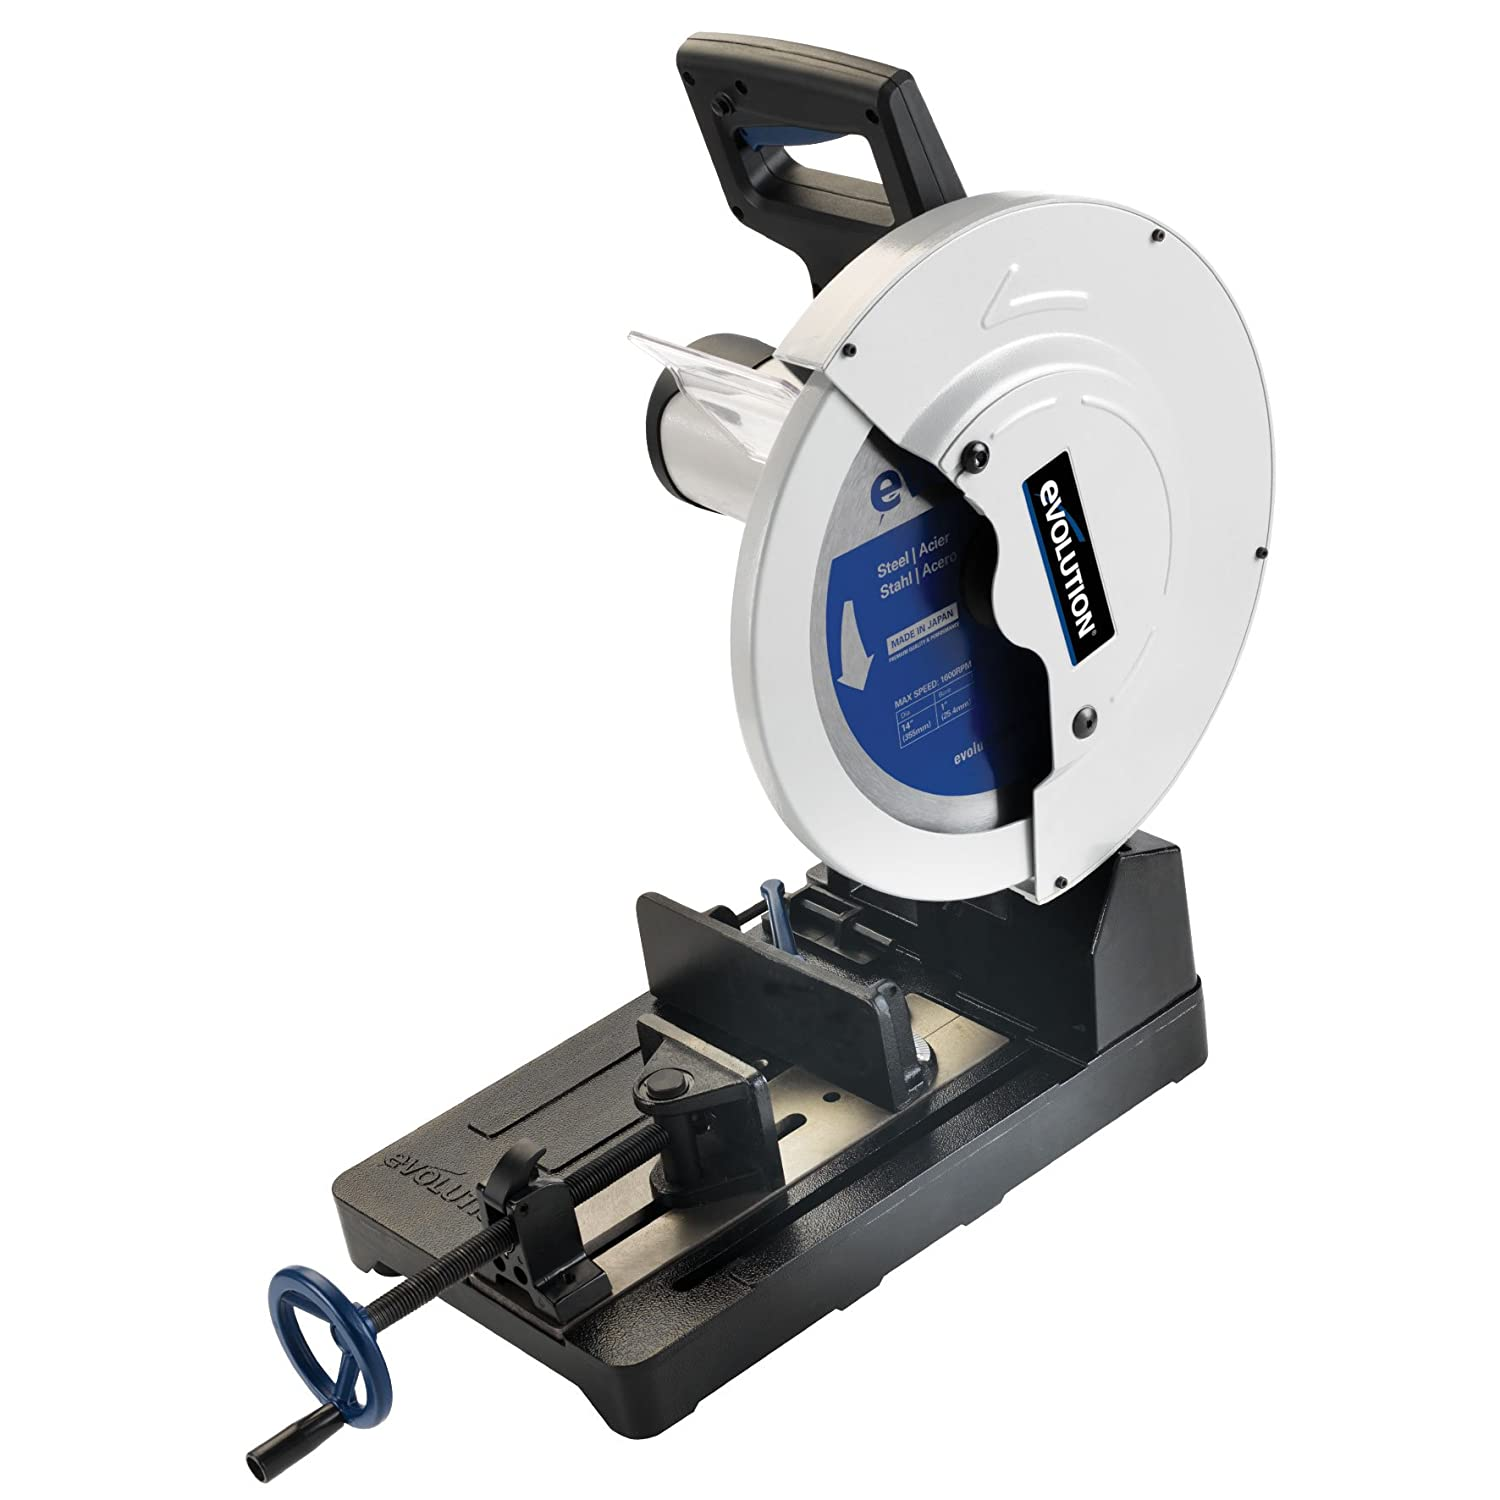 dry cut metal saw. evolution power tools evosaw380 15-inch steel cutting chop saw - circular saws amazon.com dry cut metal